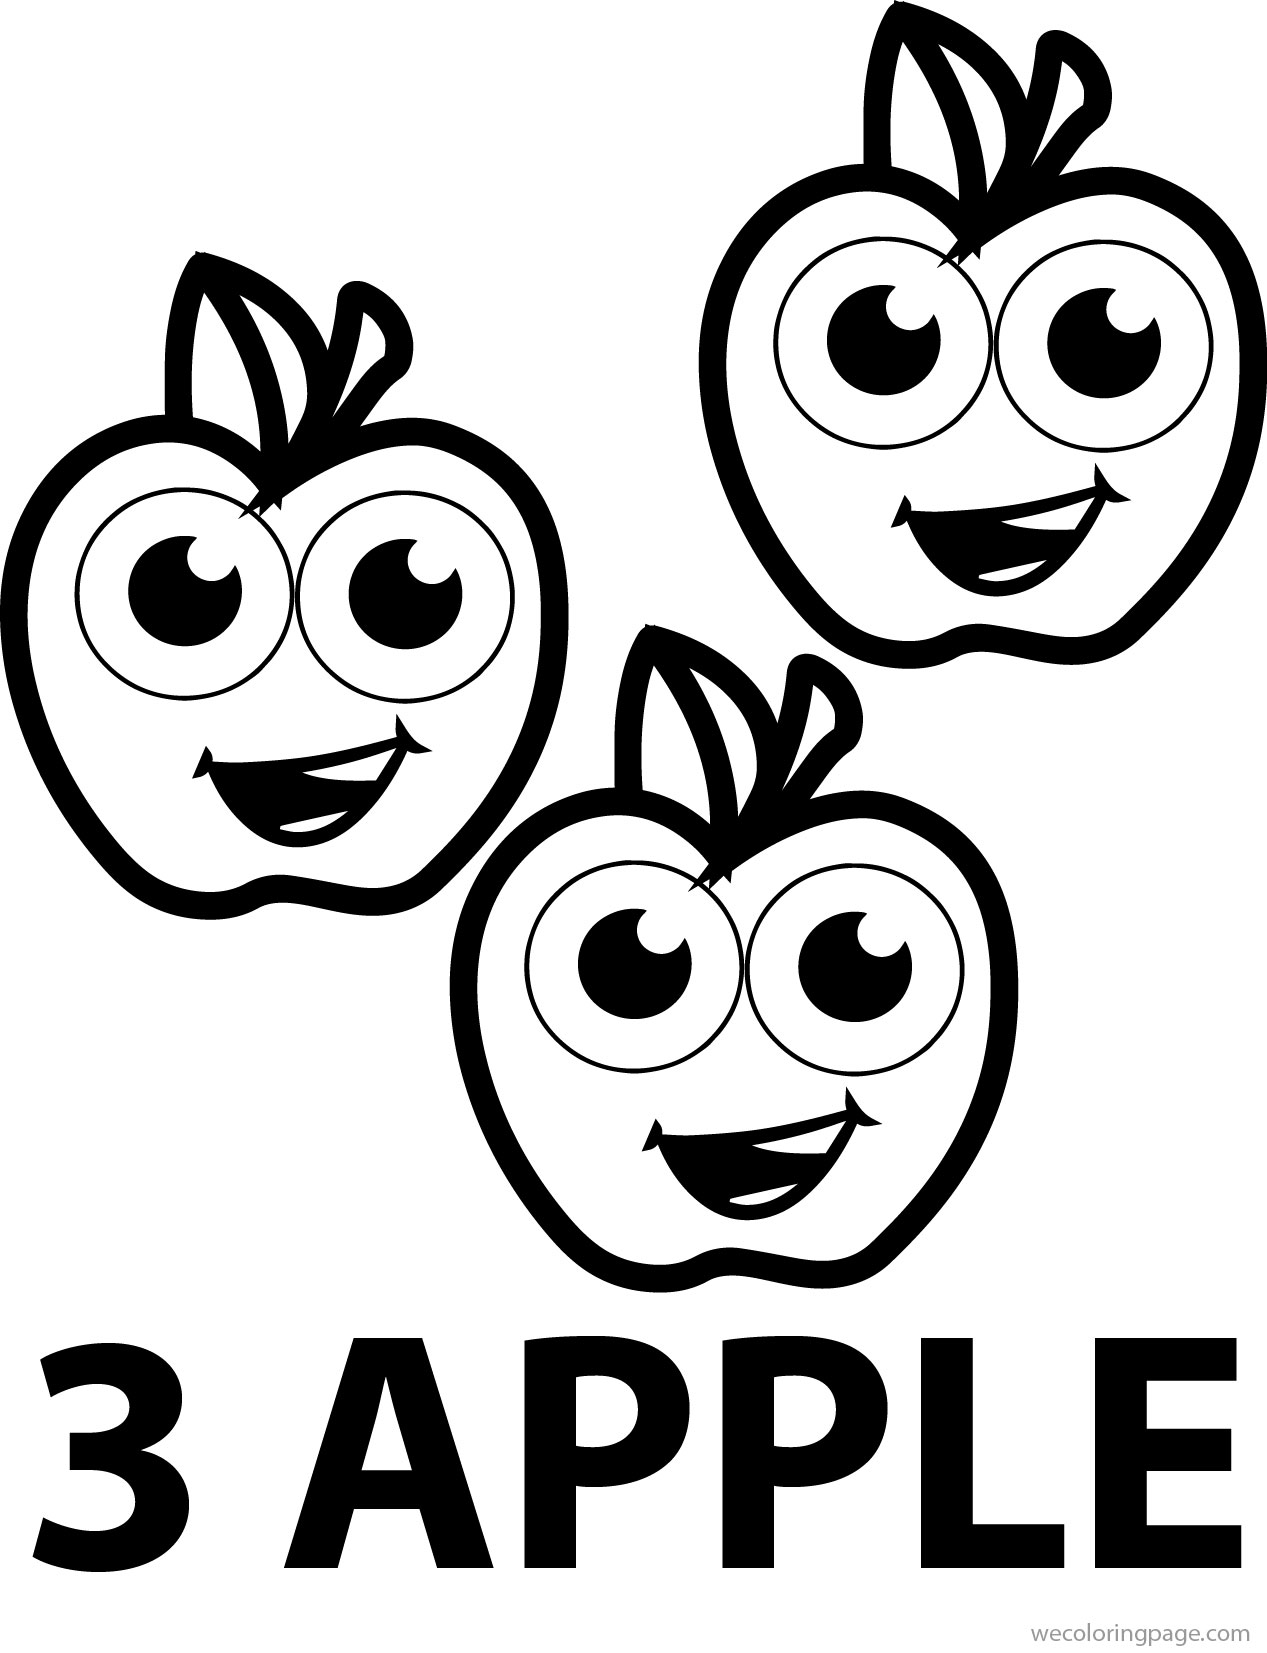 Cartoon Apple Coloring Pages : Three cartoon apple coloring pages wecoloringpage